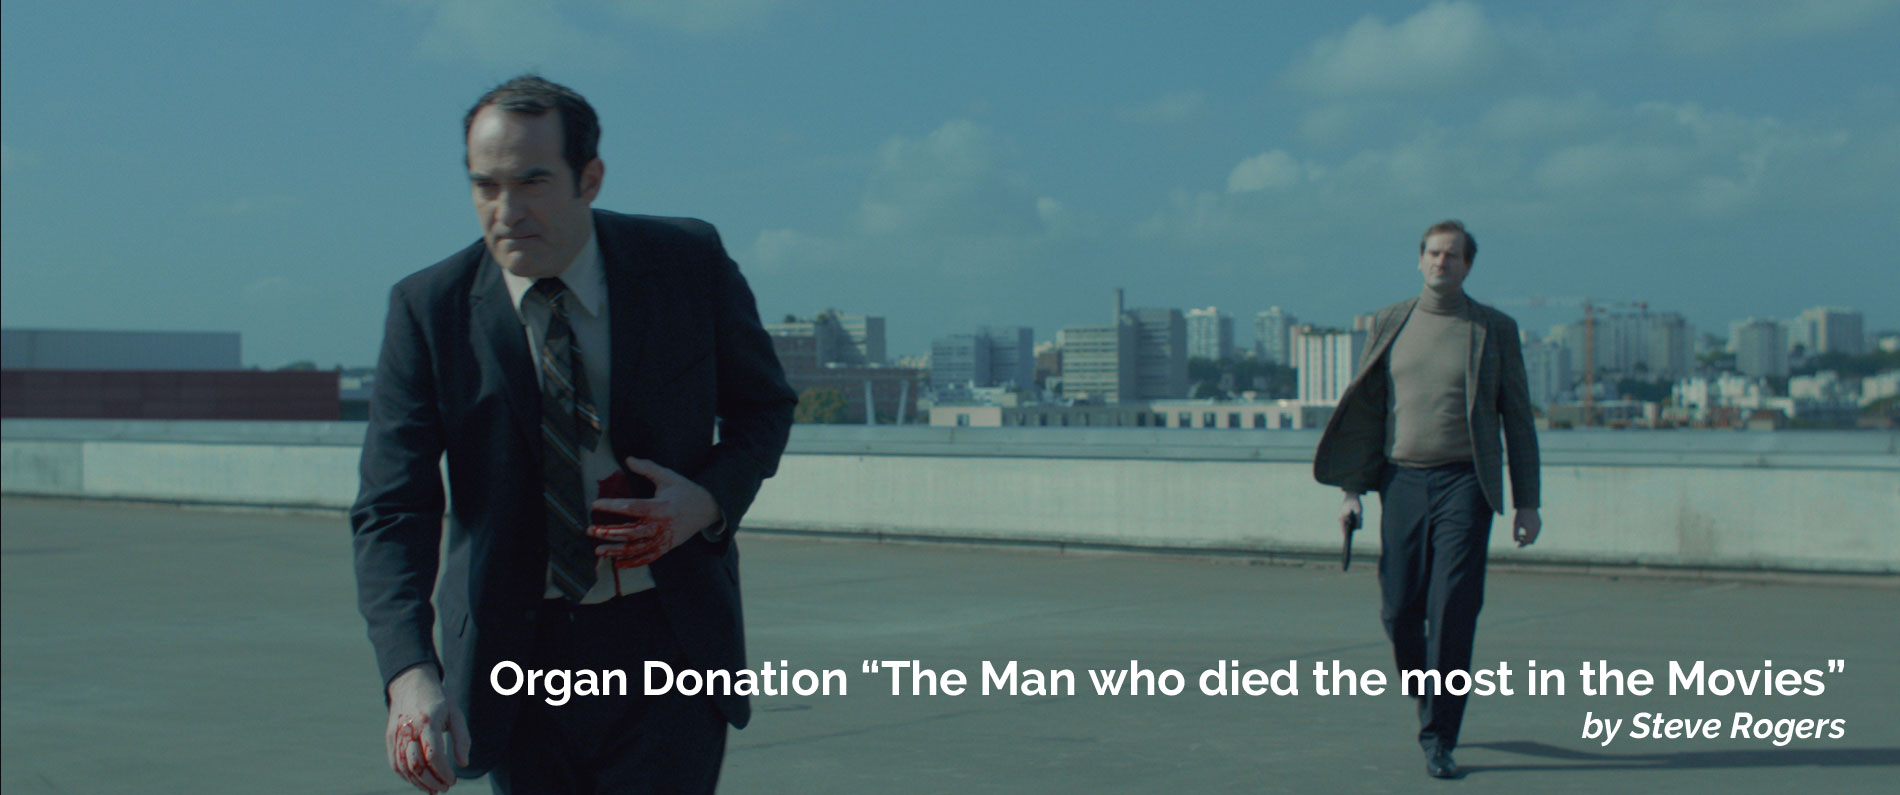 Organ Donation - The Man who died the most in the Movies